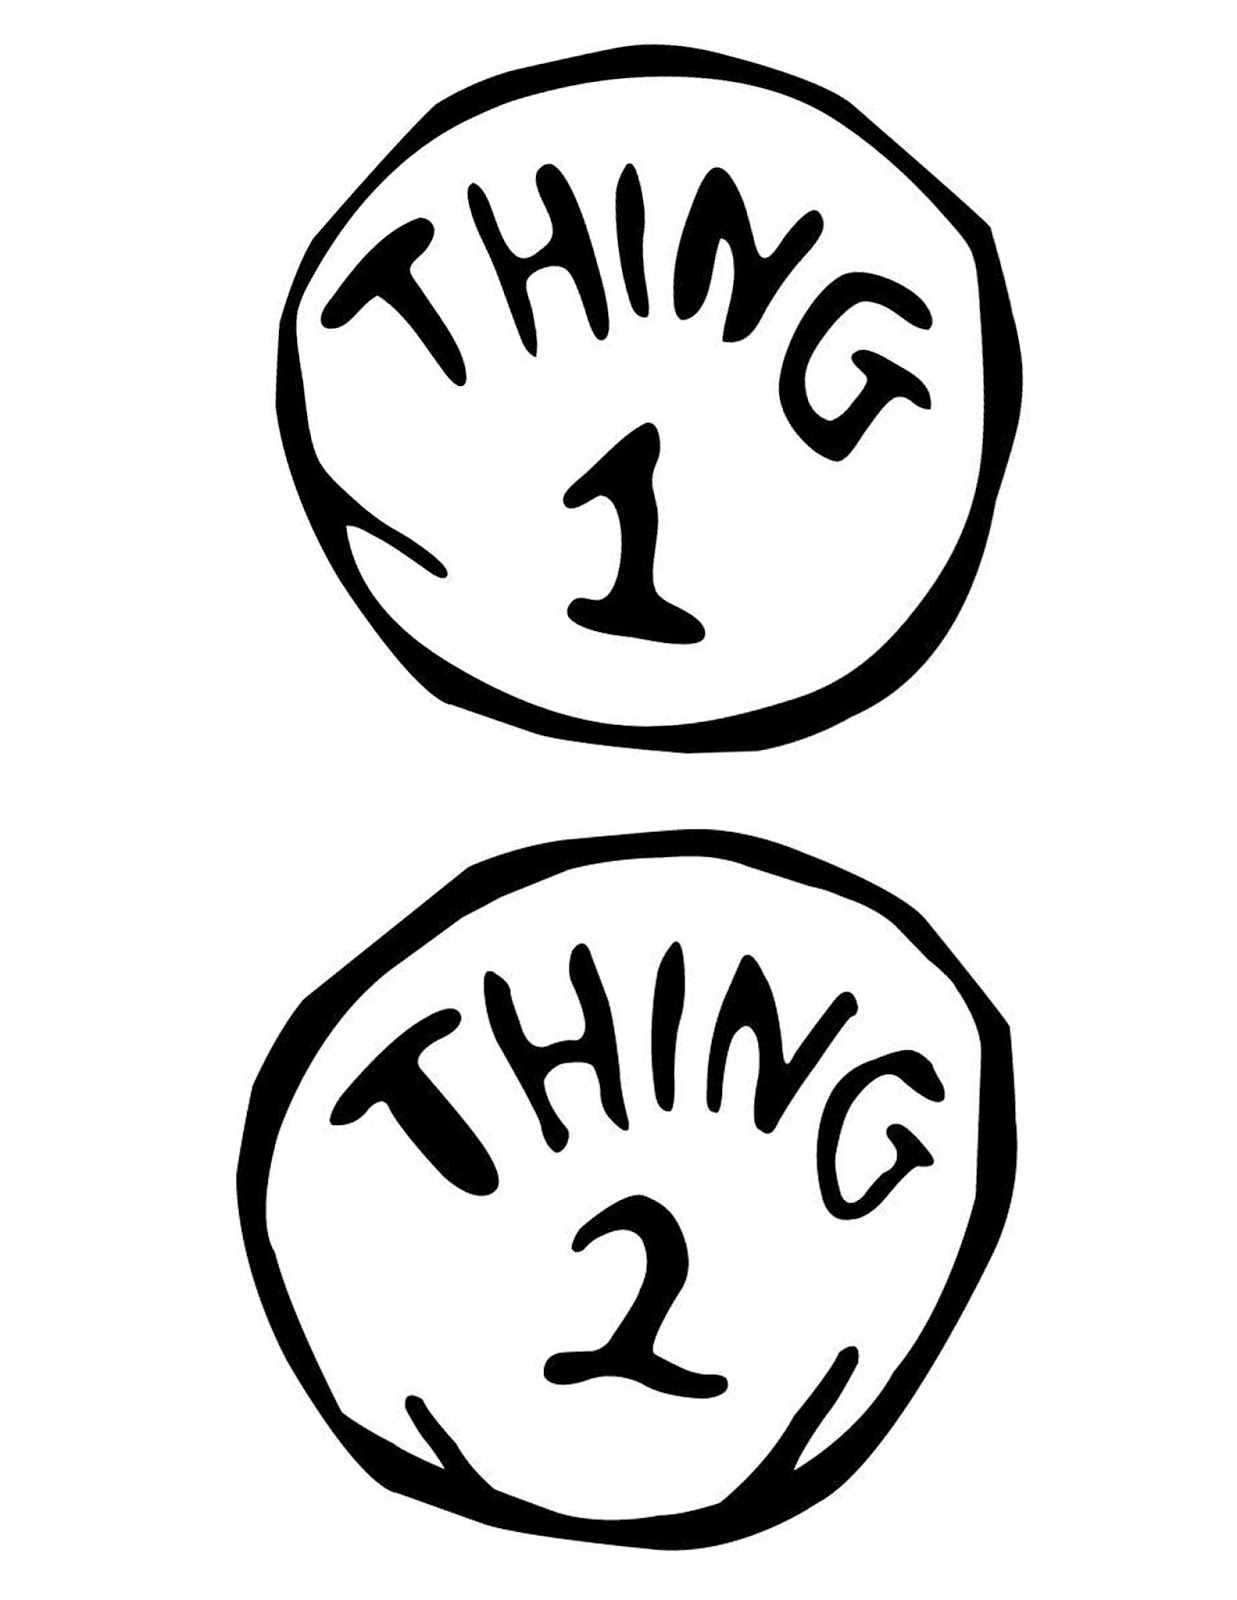 Thing 1 And Thing 2 Printable | Free Download Best Thing 1 And Thing - Thing 1 And Thing 2 Free Printable Template